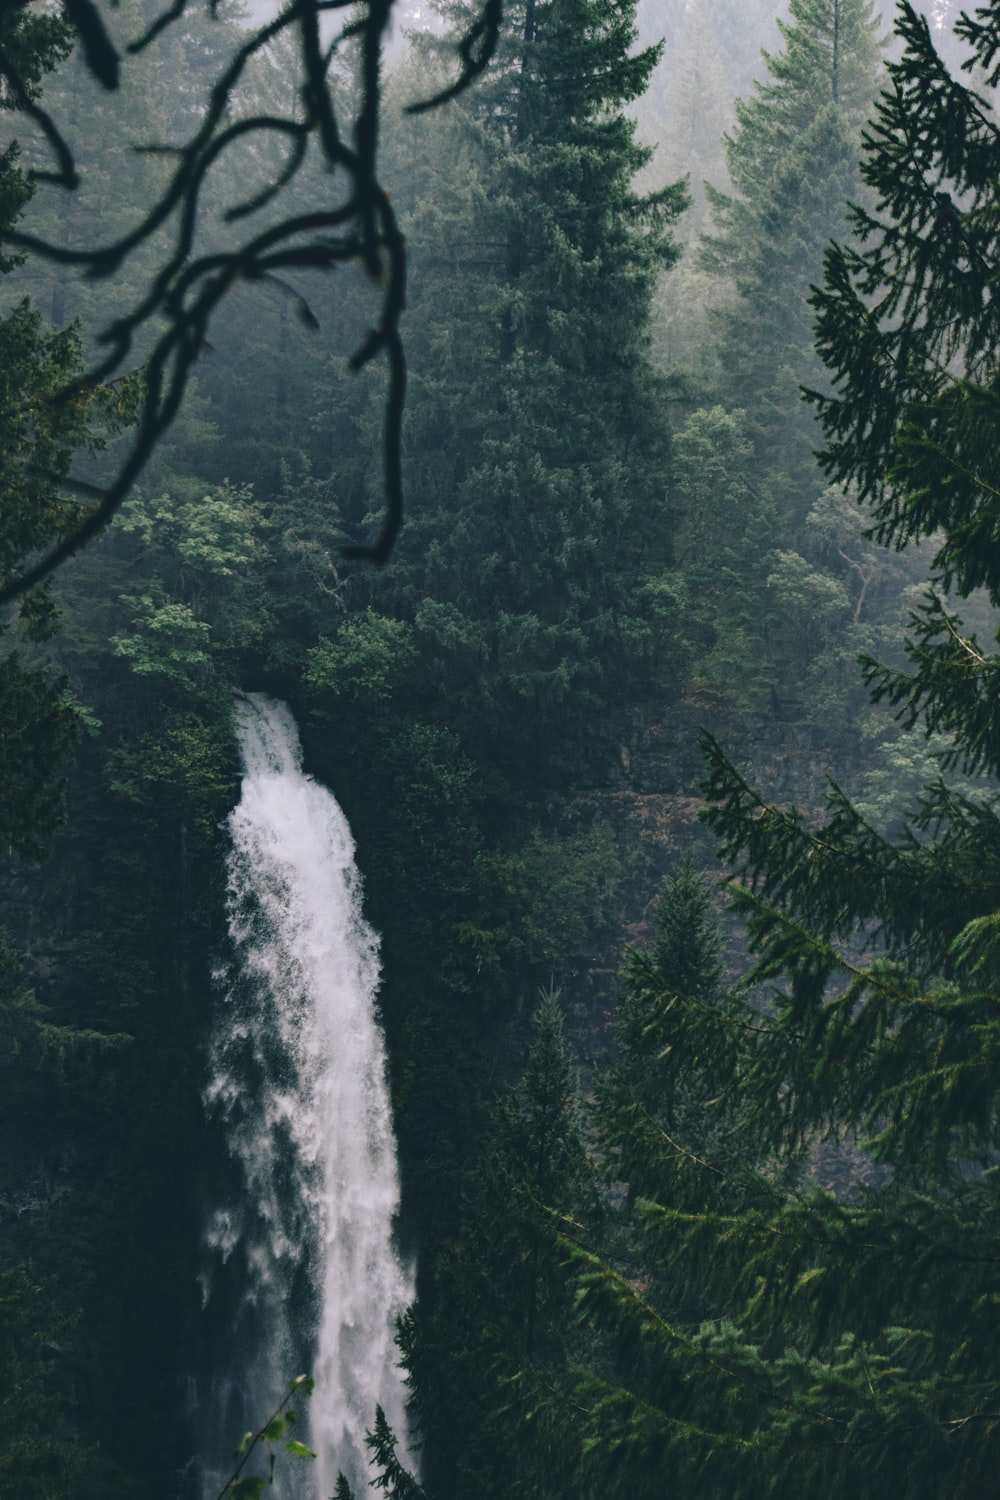 waterfalls in the middle of forest during daytime